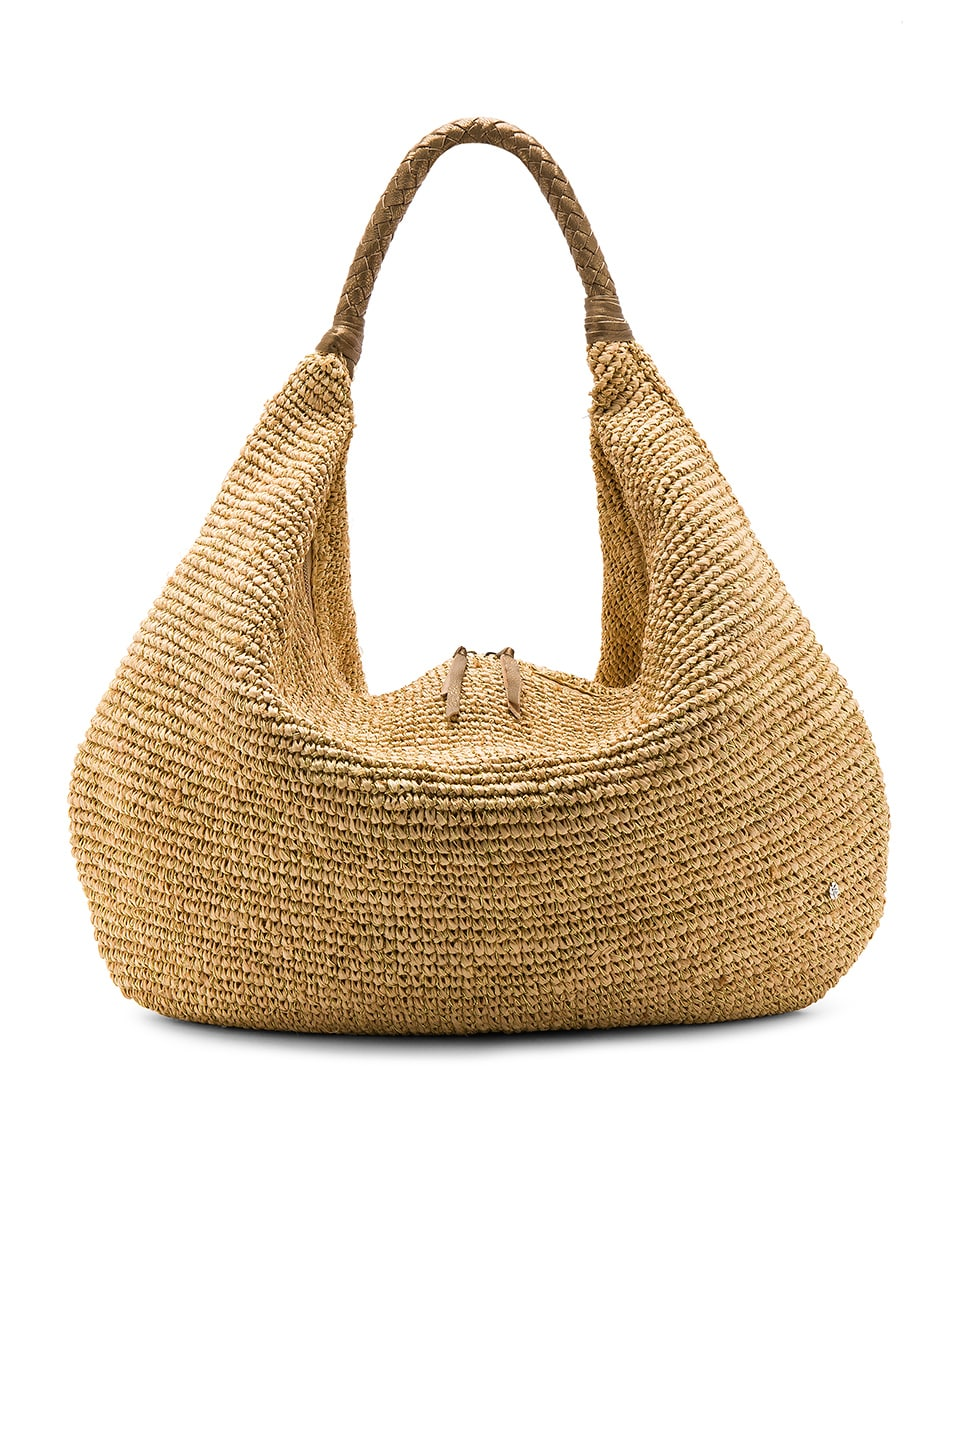 florabella Villahermosa Lux Tote in Natural & Gold